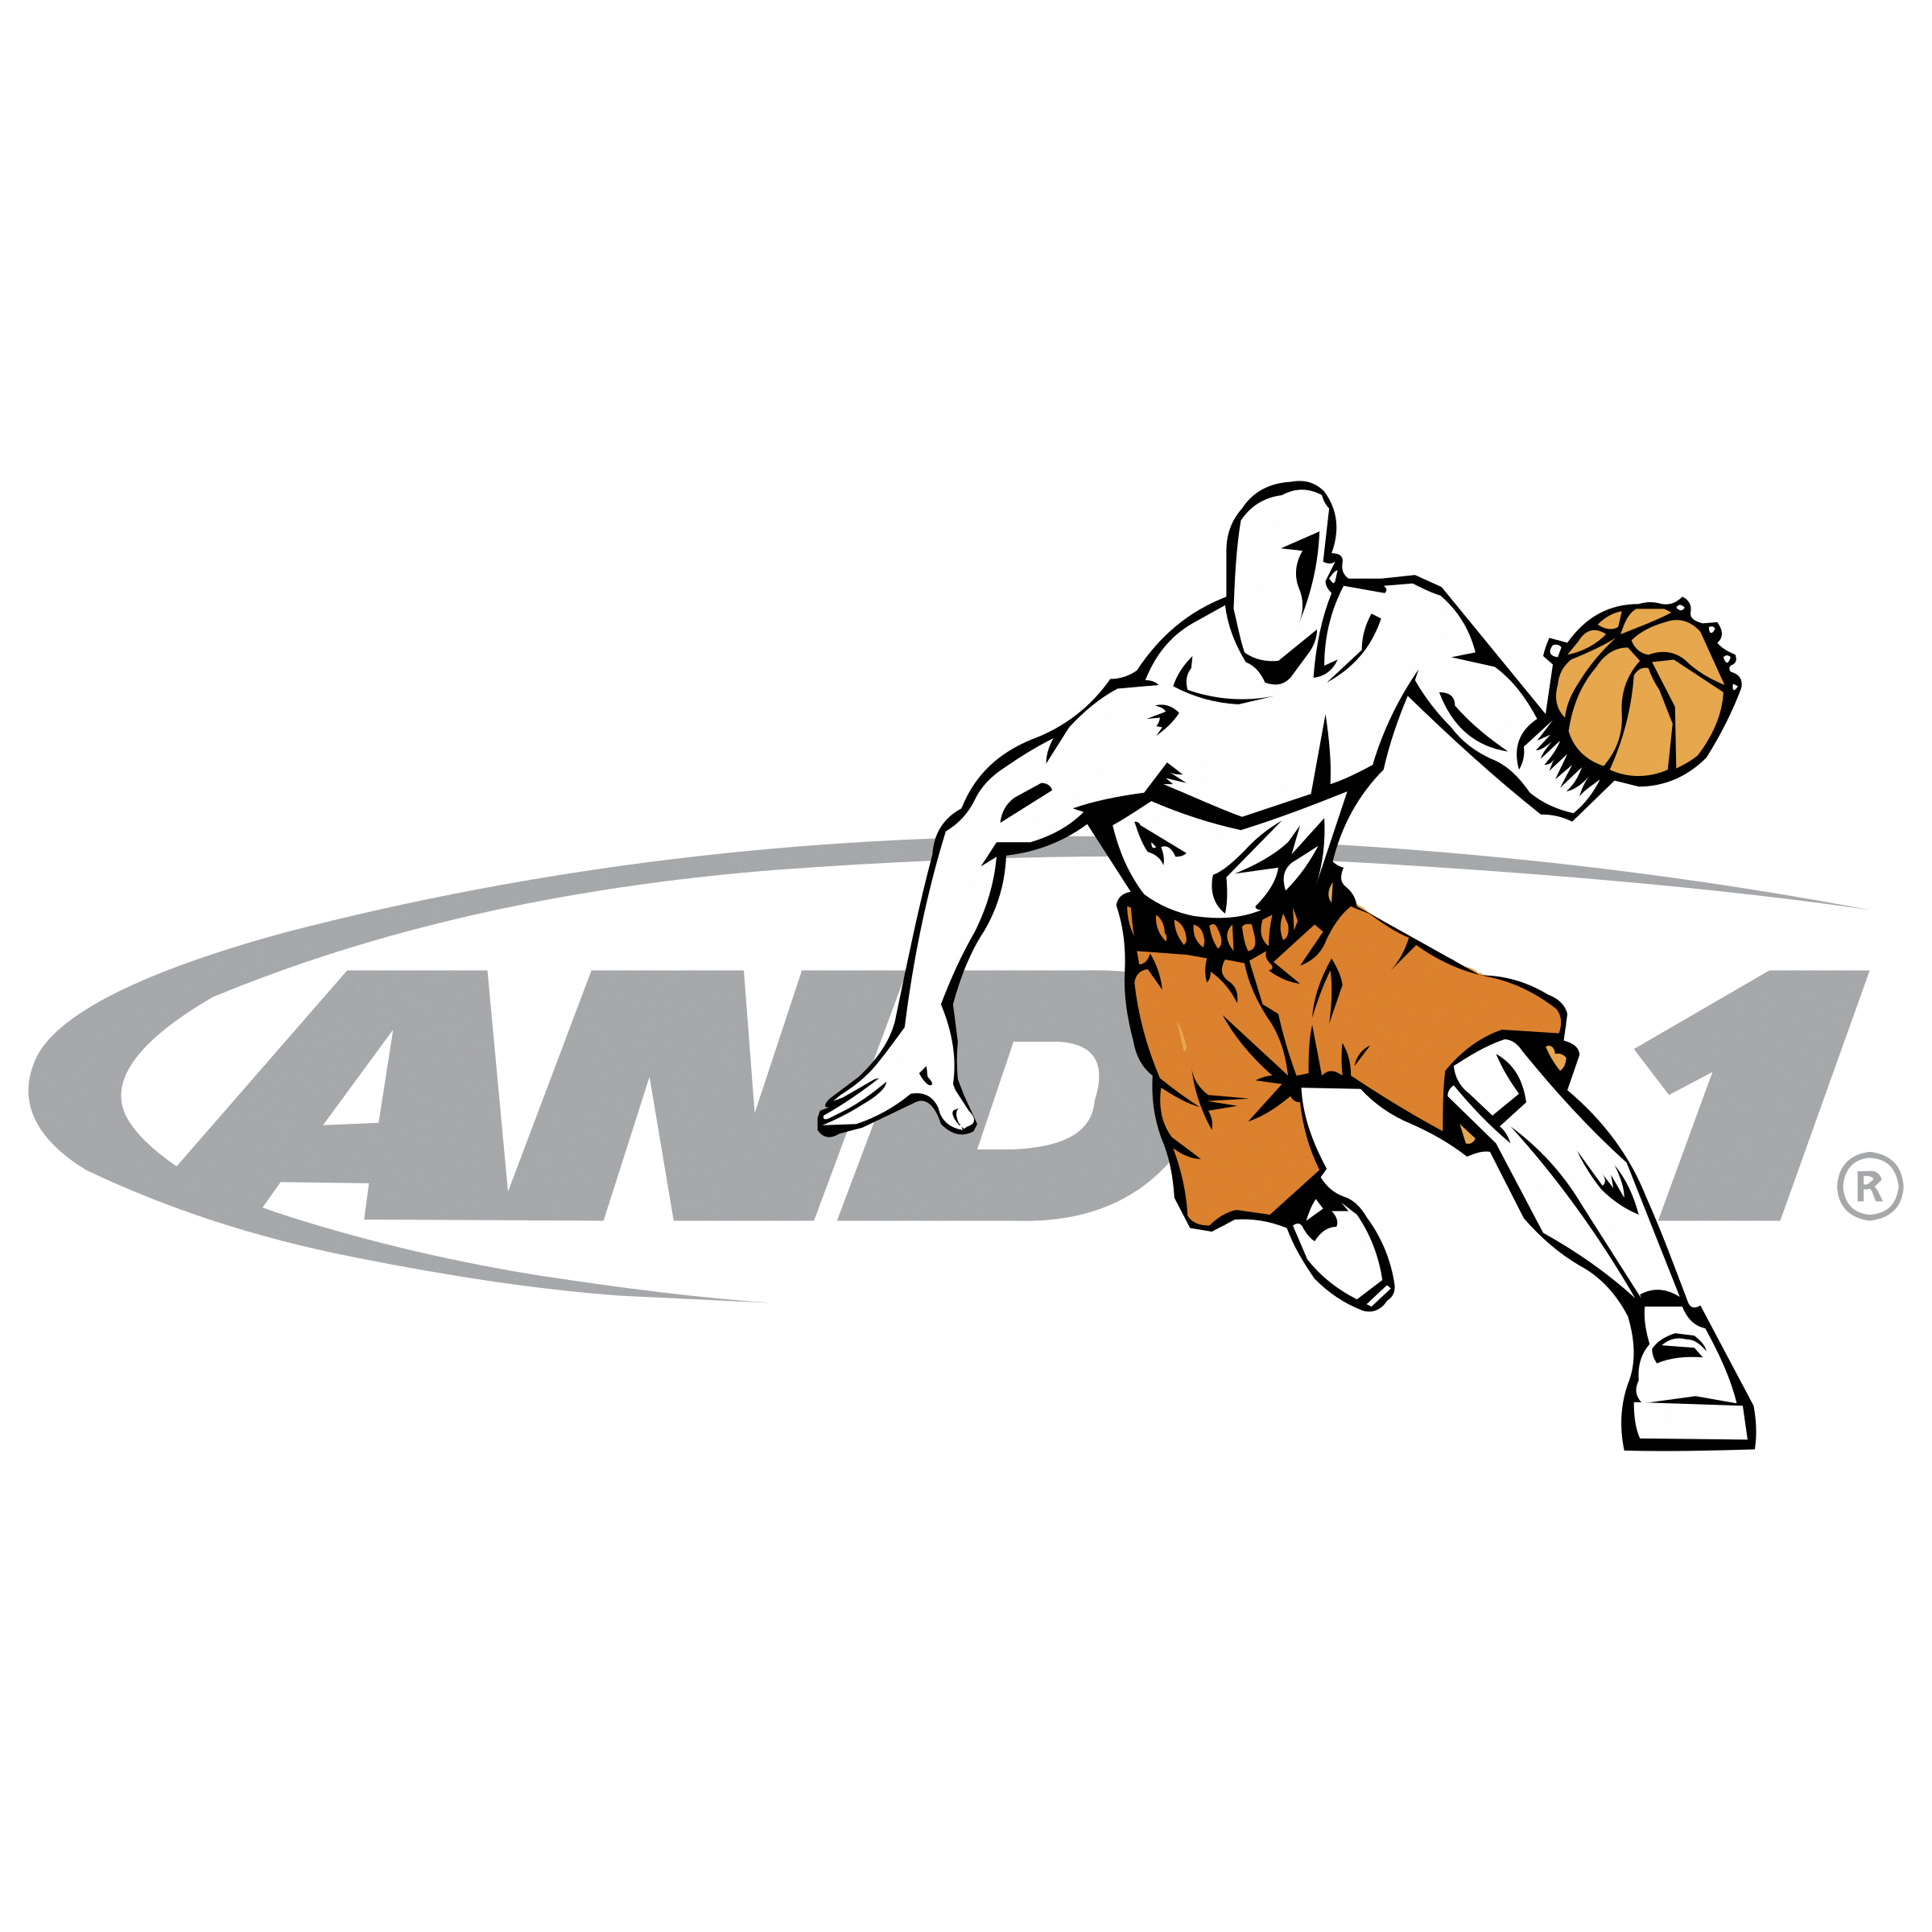 c37adb47a Image result for and 1 basketball logo  logobasketball